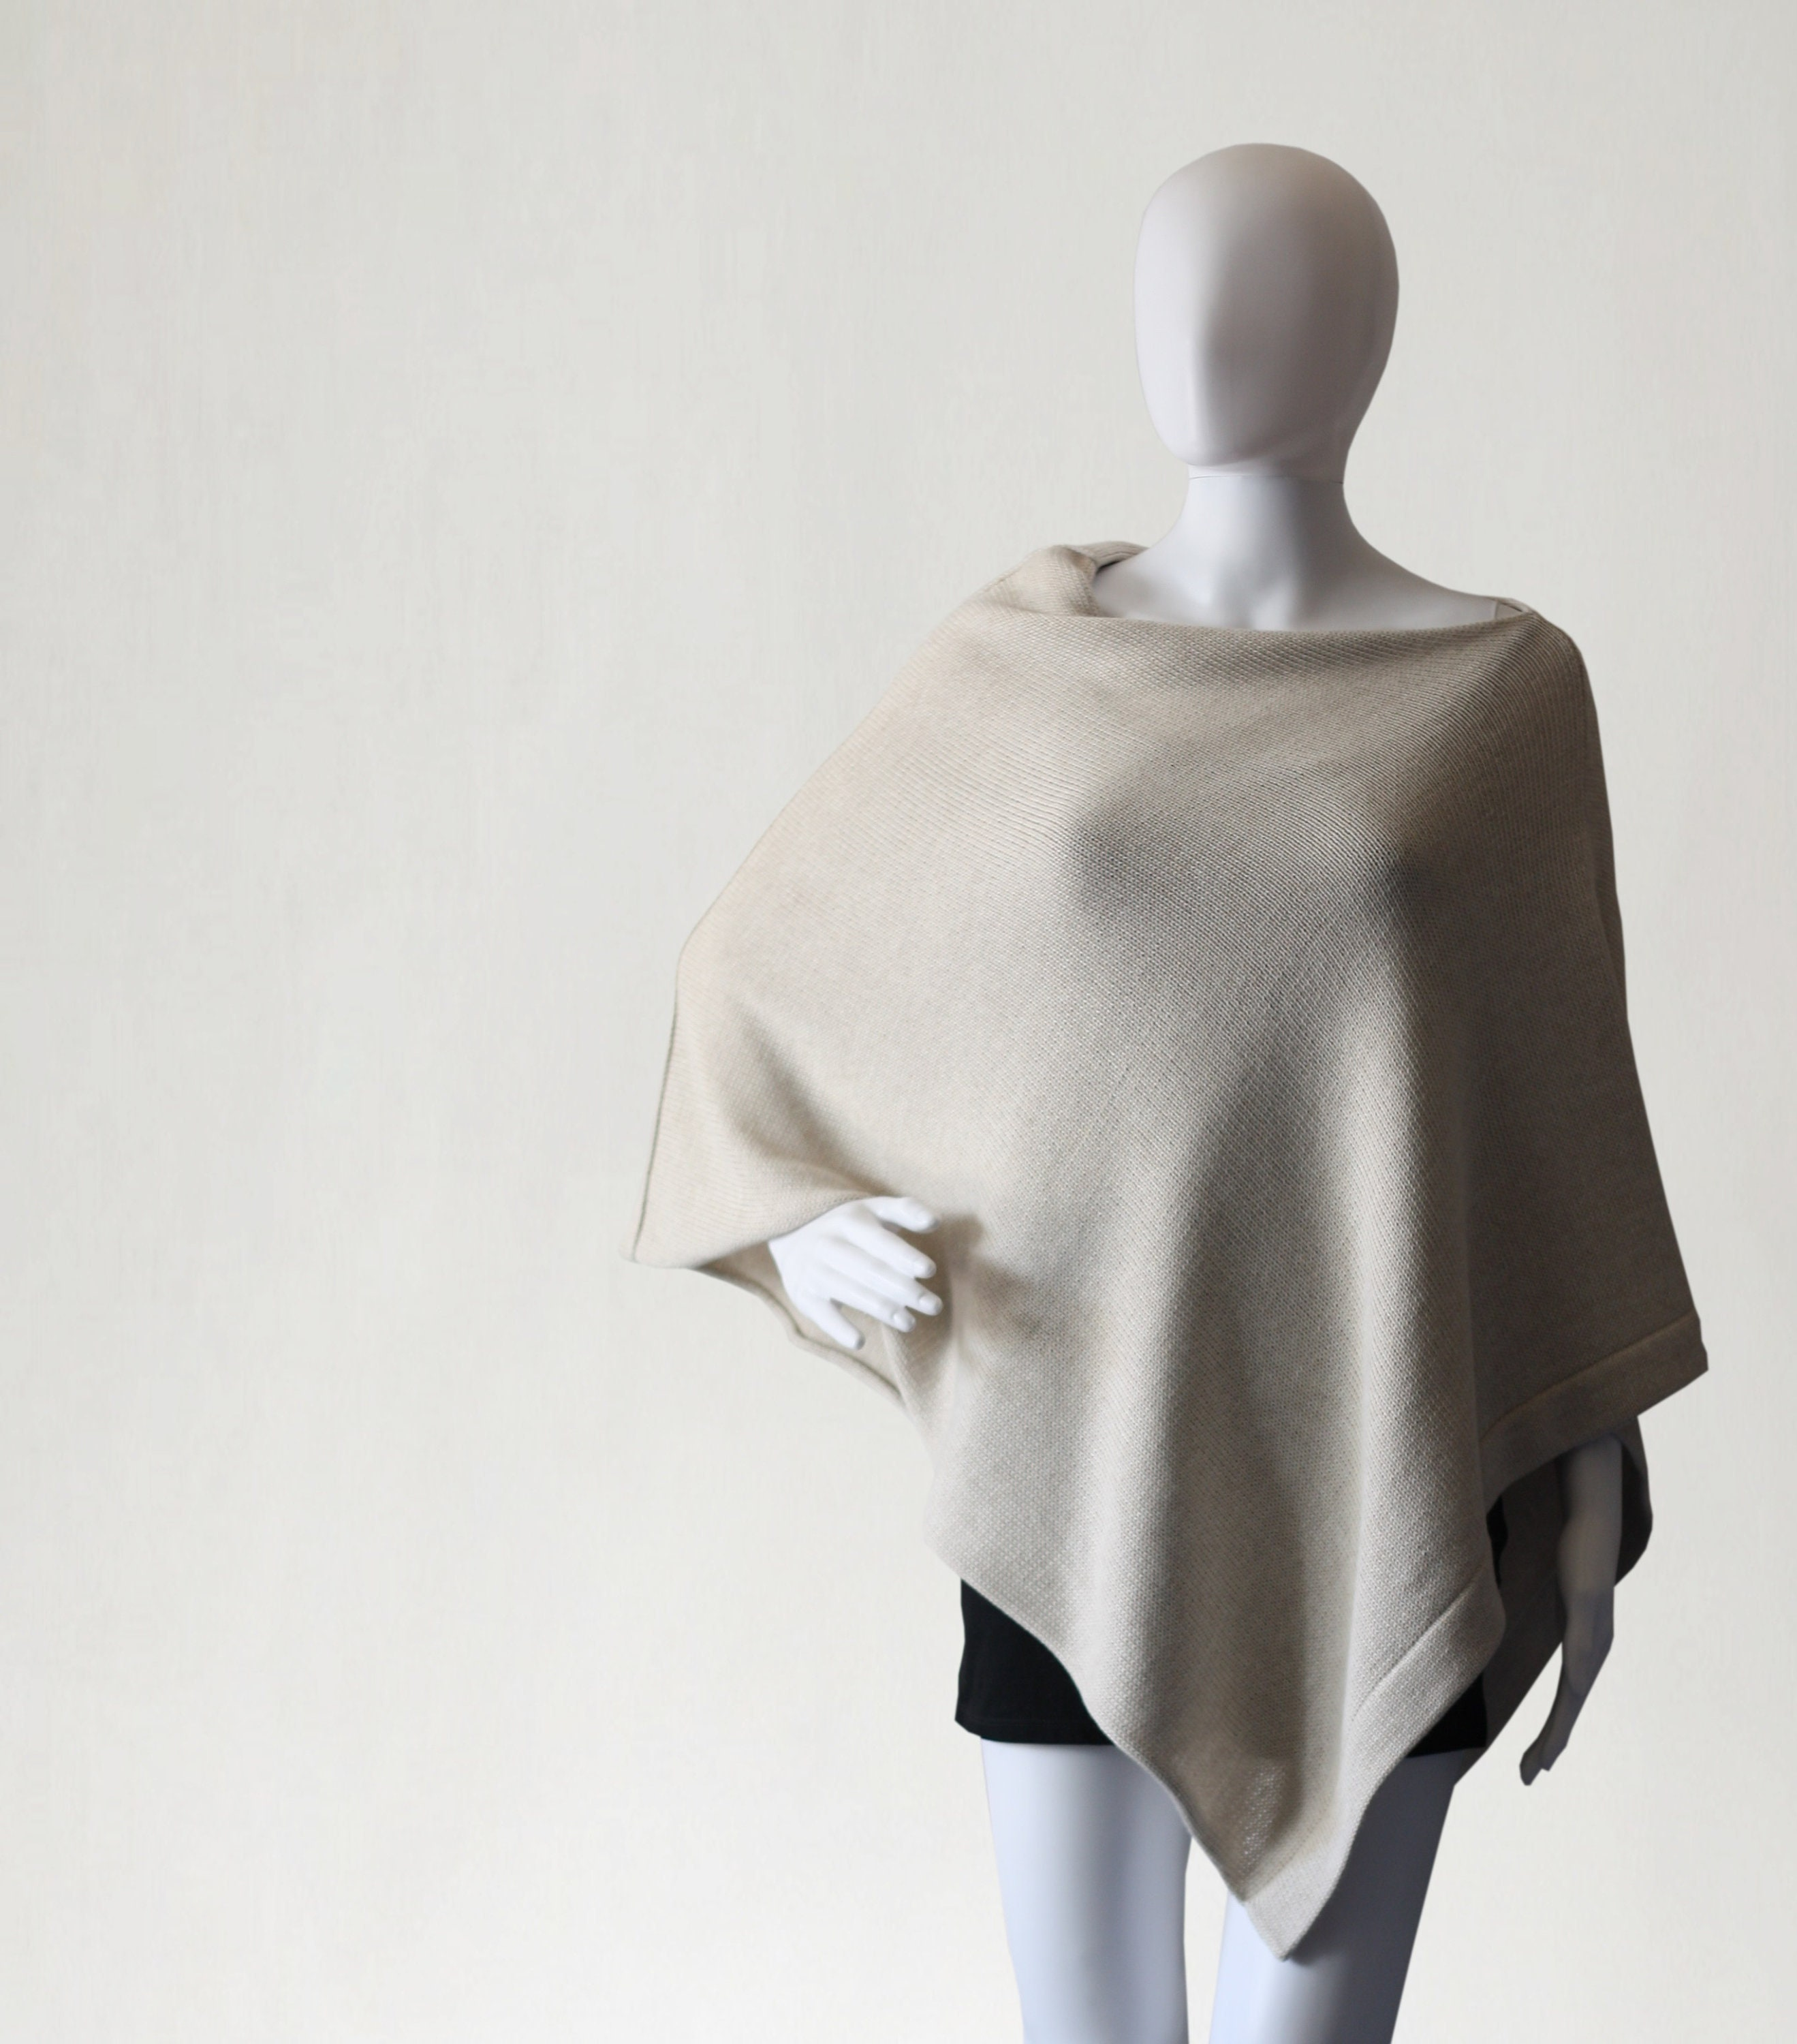 Vintage Scarf Styles -1920s to 1960s Wrap For Womens, Womens Wool Poncho, Cape, Sweater, Knit Scarf, Shawl $95.61 AT vintagedancer.com